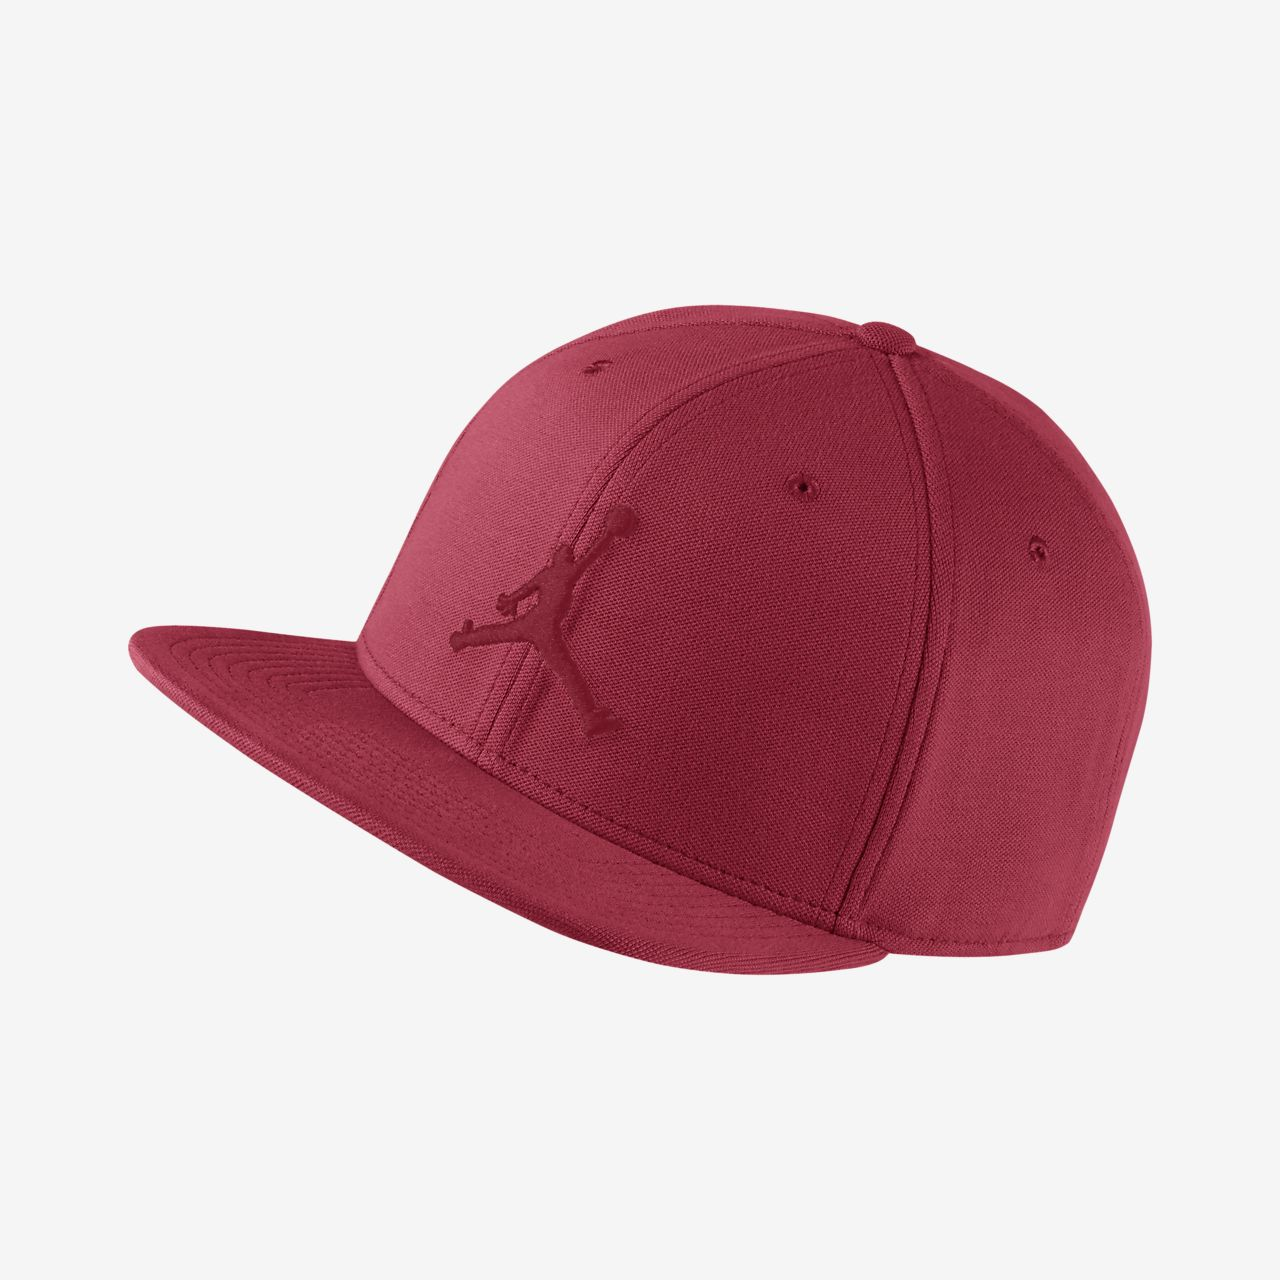 66f469e7891 Jordan Jumpman Snapback Adjustable Hat. Nike.com